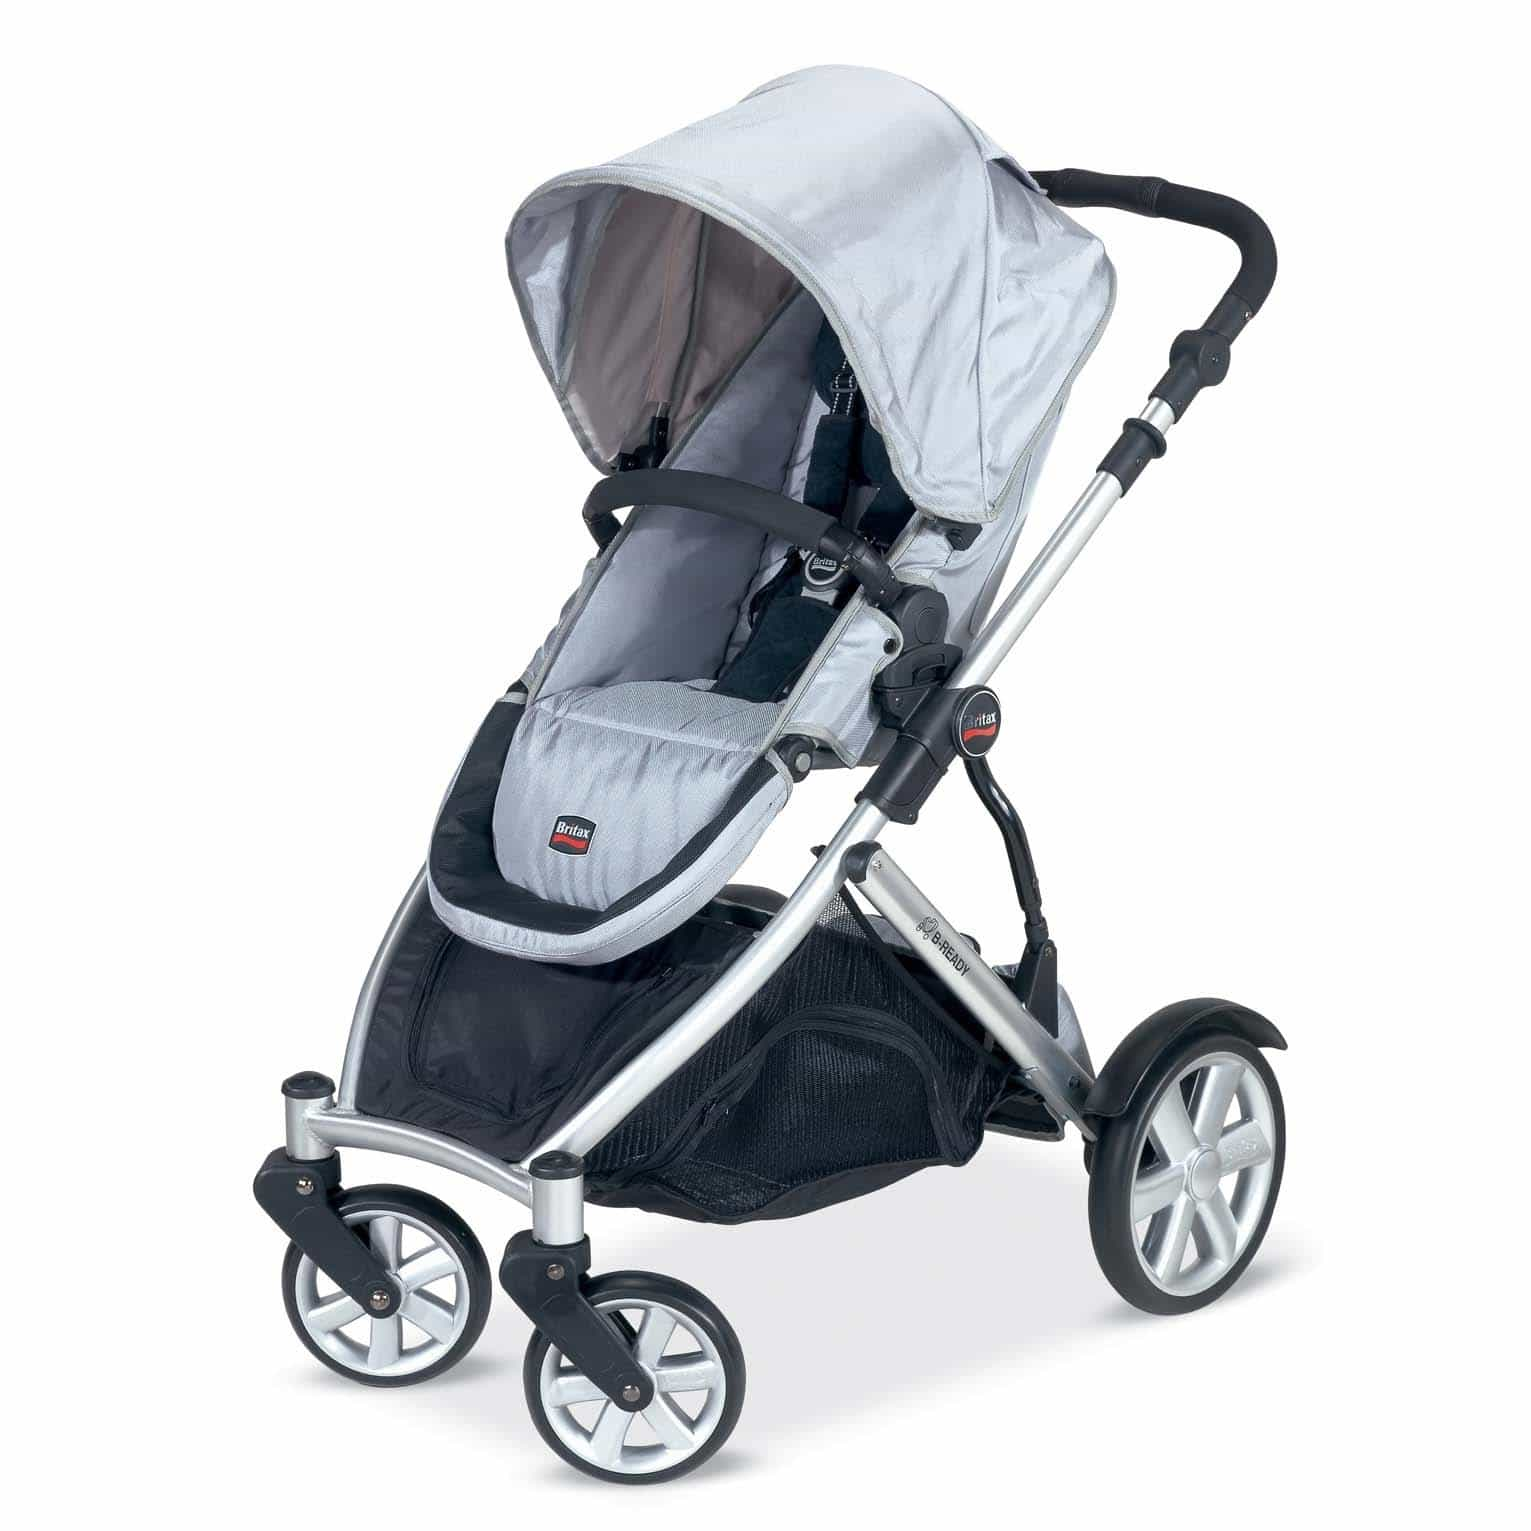 My new stroller love: The Britax B-Ready.